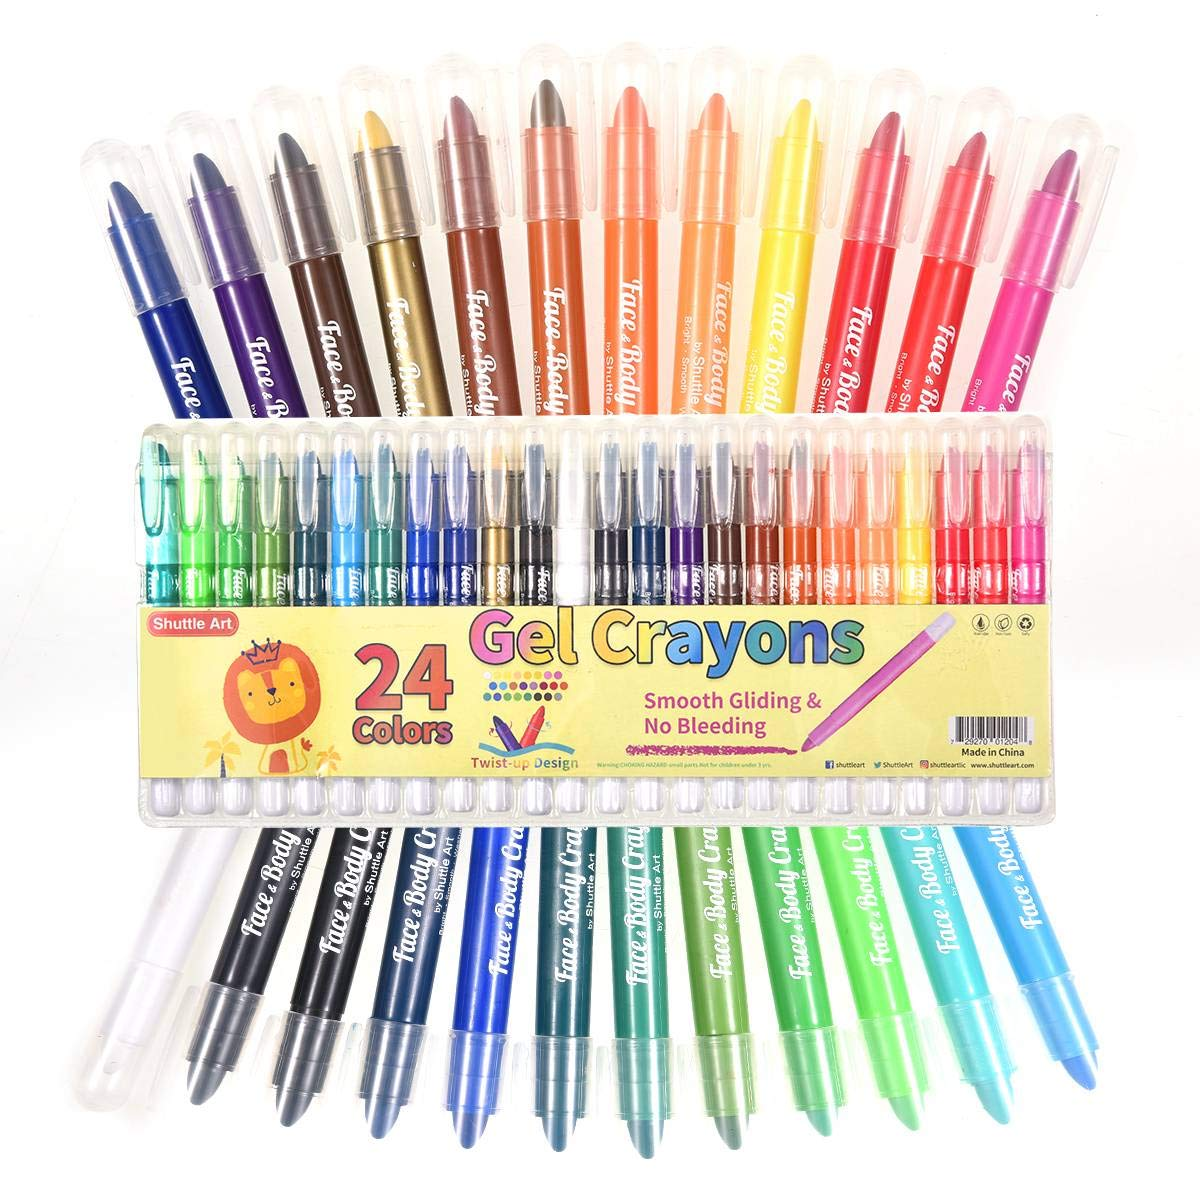 Shuttle Art 24 Colors Gel Crayons, Washable Twistable Non-Toxic Gel Crayons Set for Toddlers Kids and Students, Ideal for Paper Glass and Mirrors by Shuttle Art